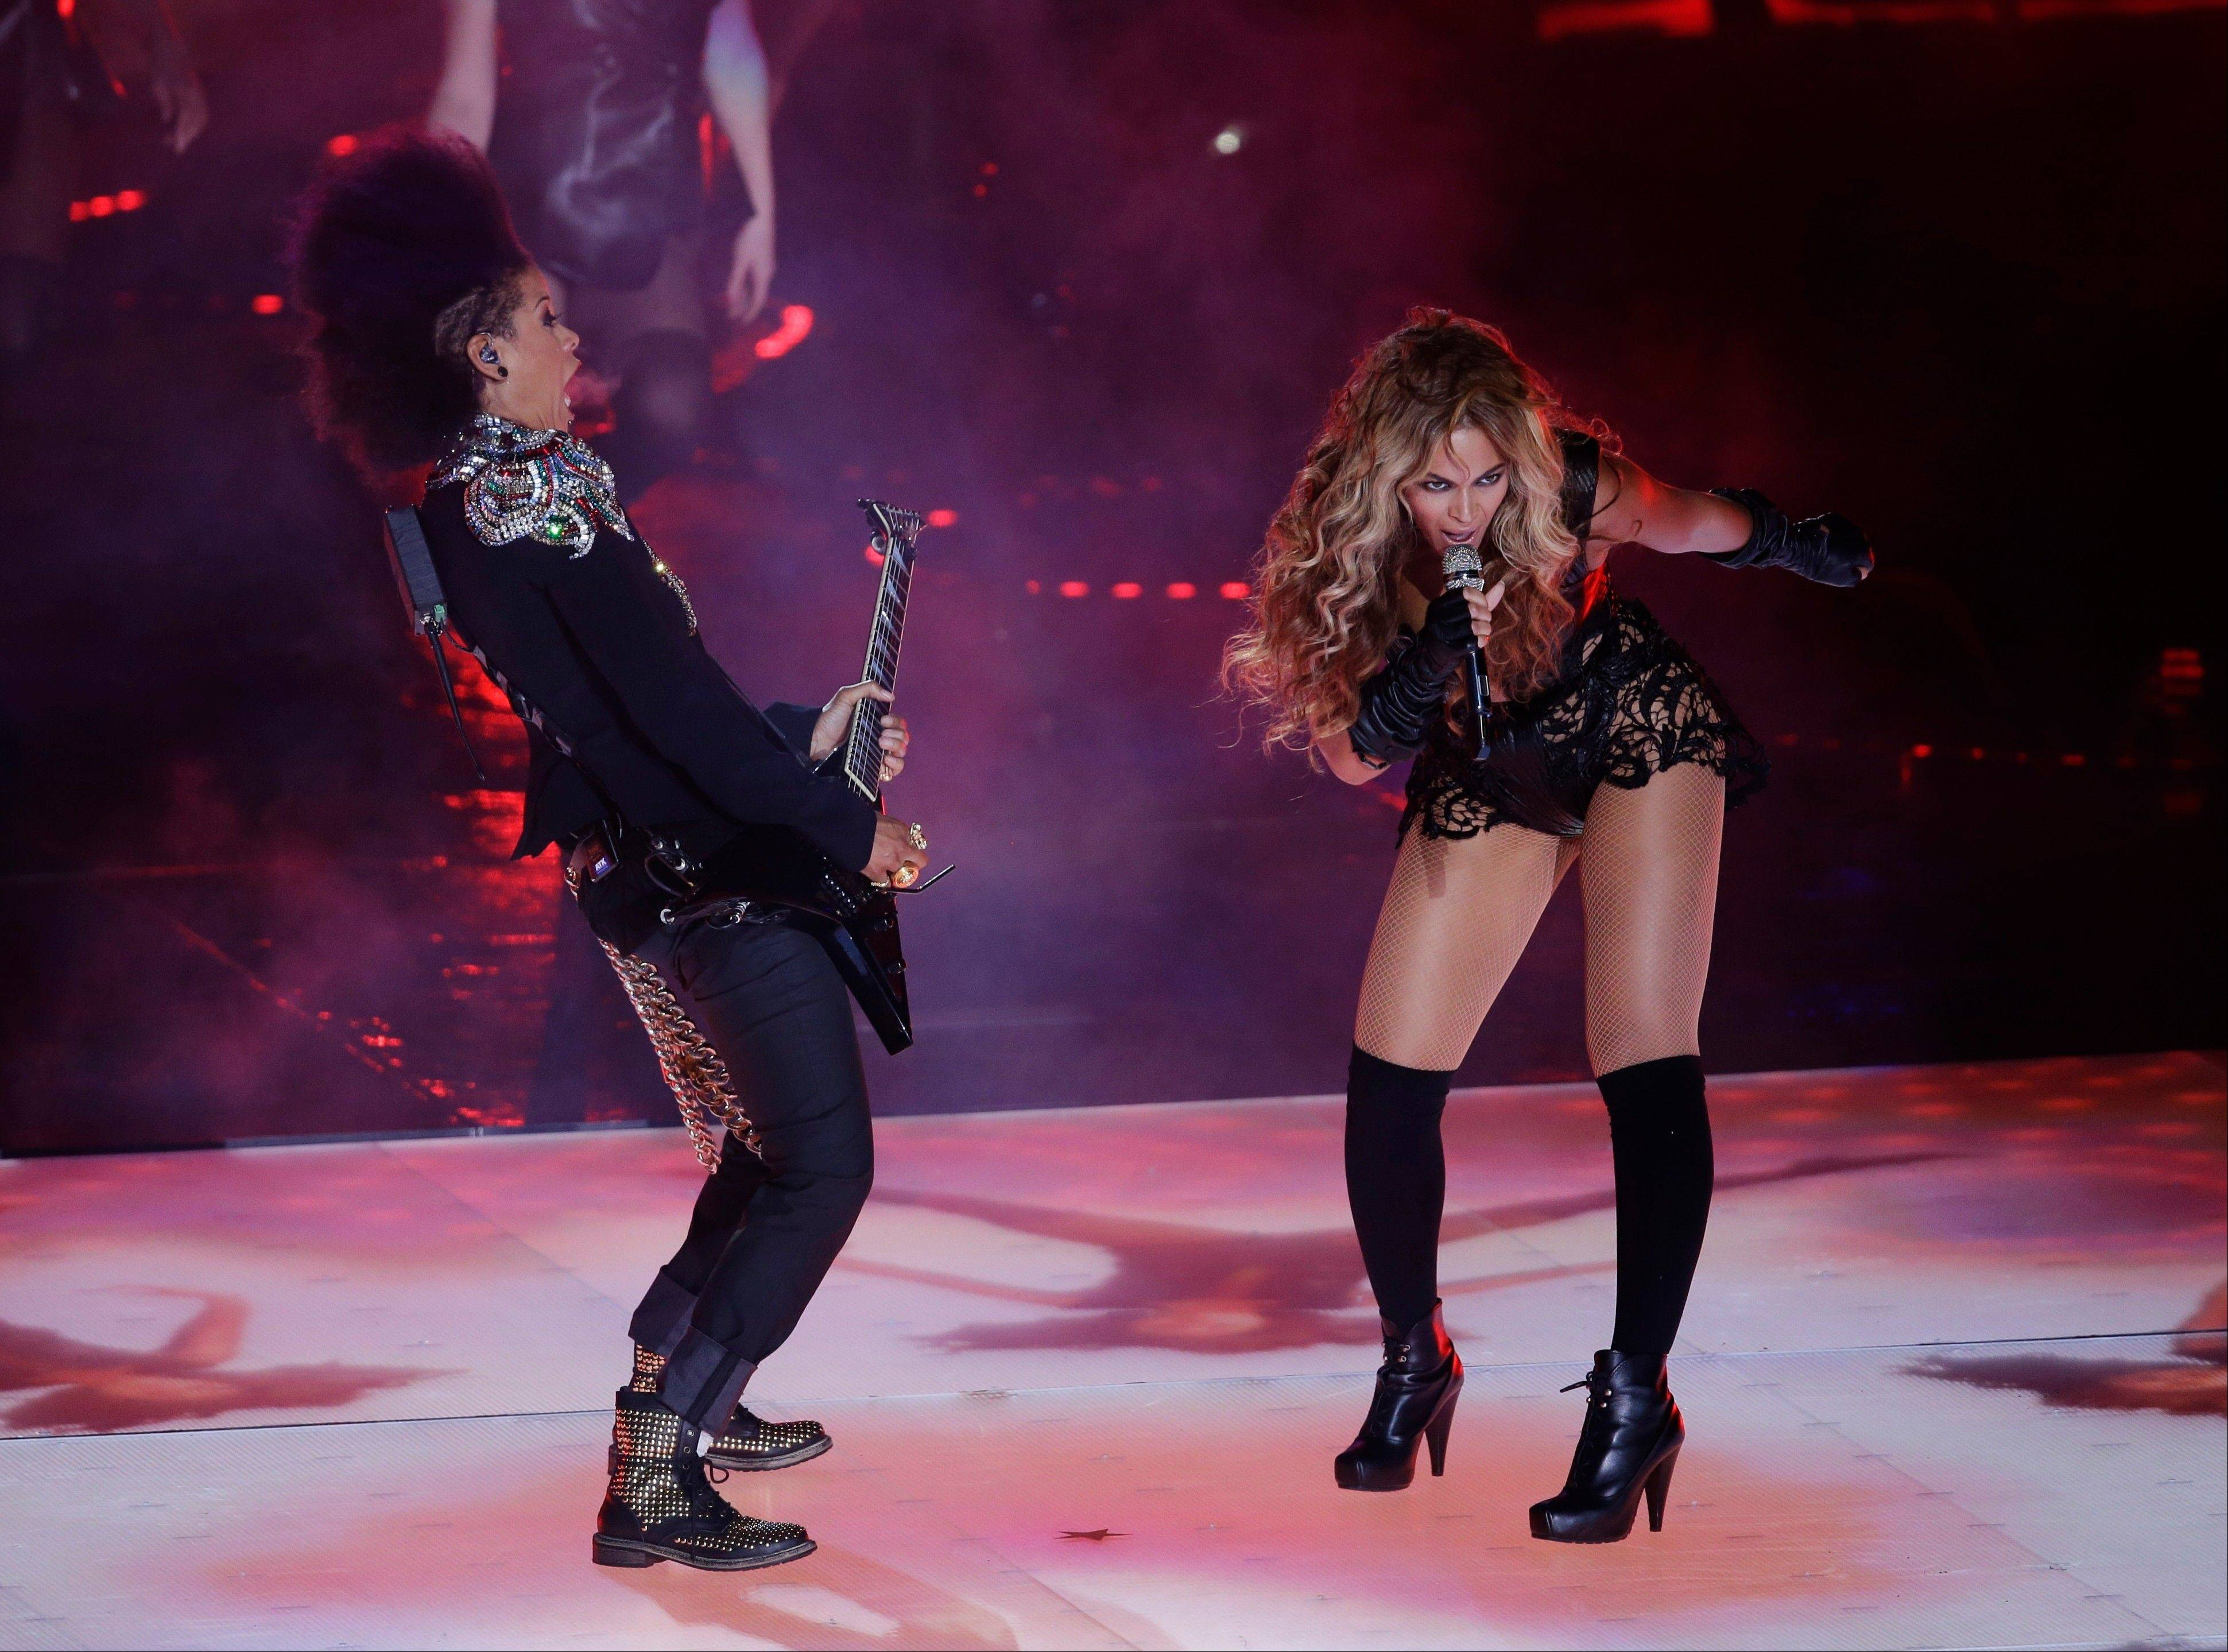 Beyonce performed a 12-minute show at halftime of Super Bowl XLVII.